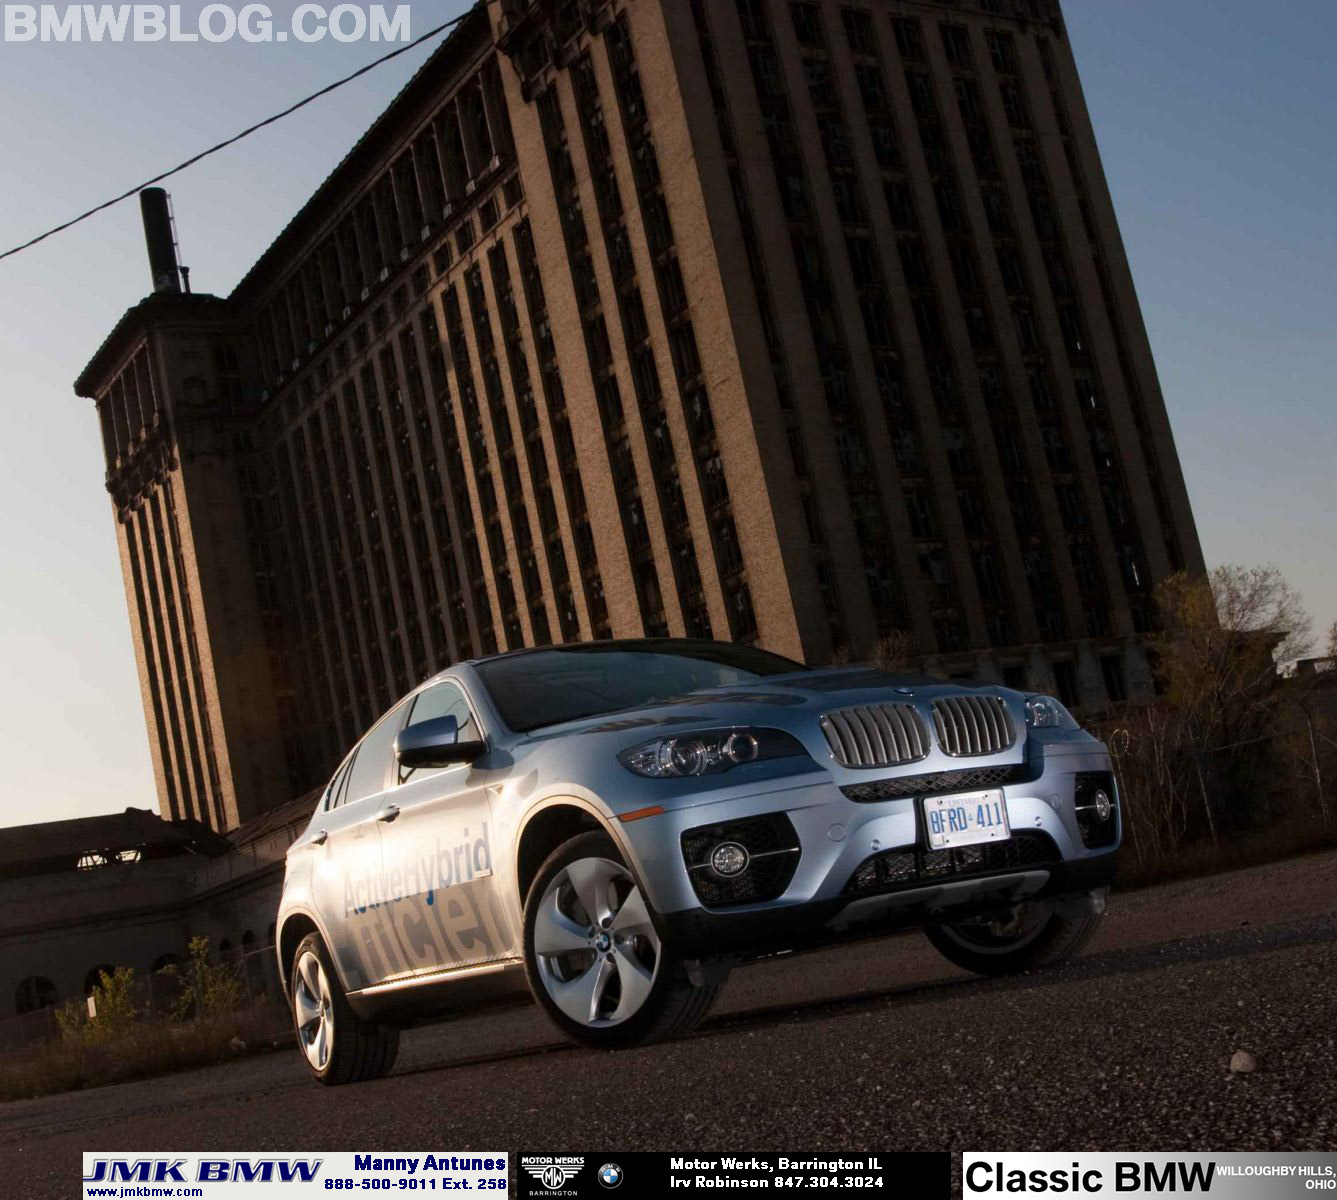 Bmw X6 Price In Germany: BMW Celebrates 100,000 Units Sold Worldwide